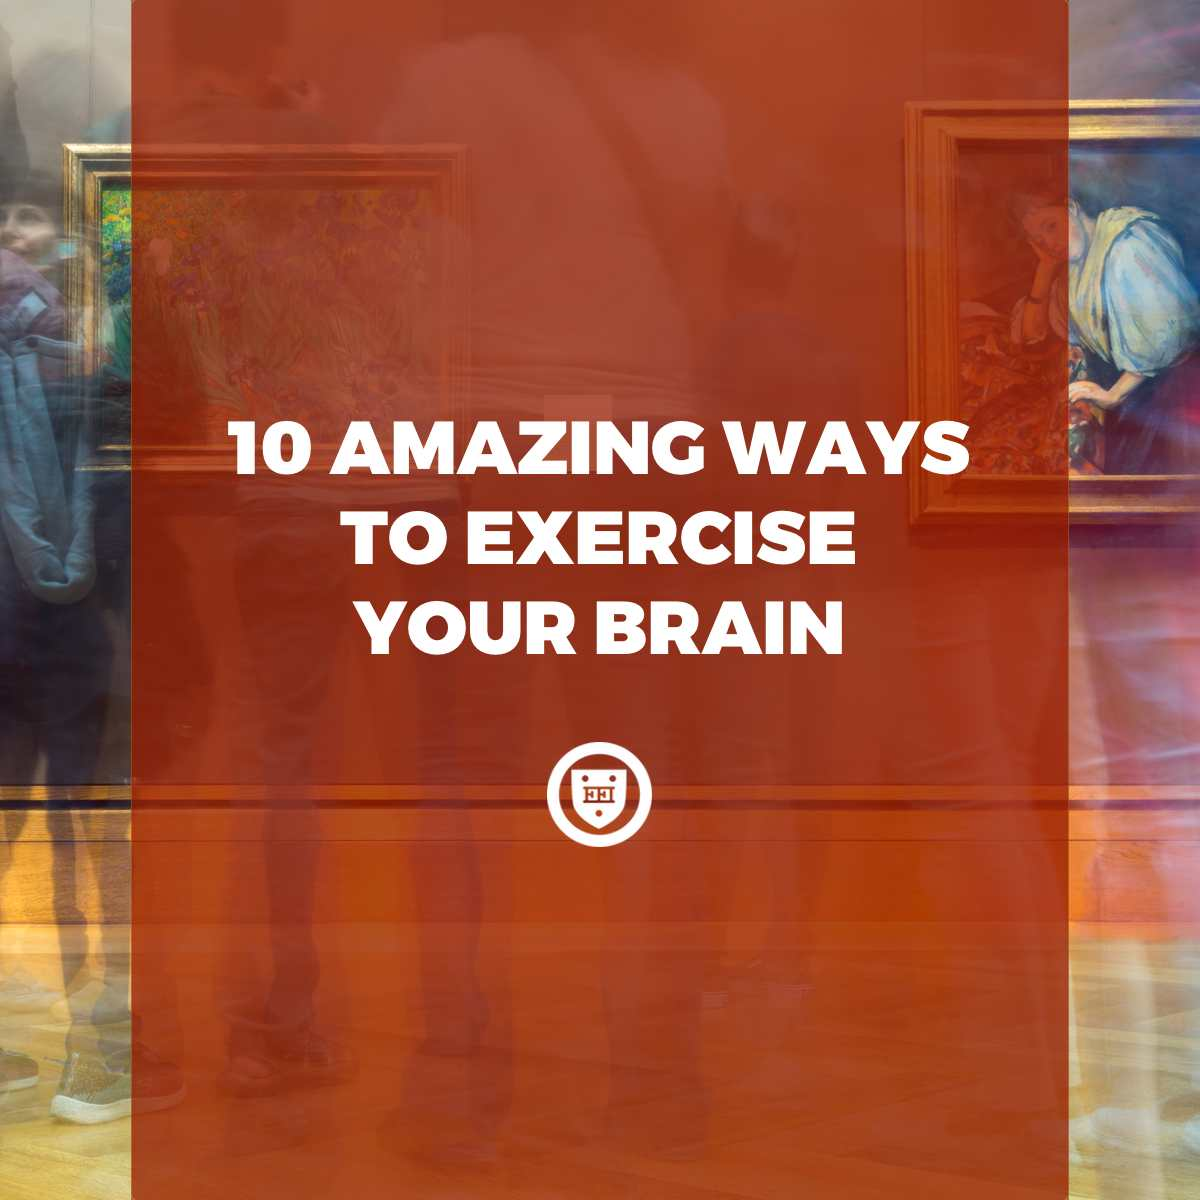 10 Amazing Ways to Exercise Your Brain